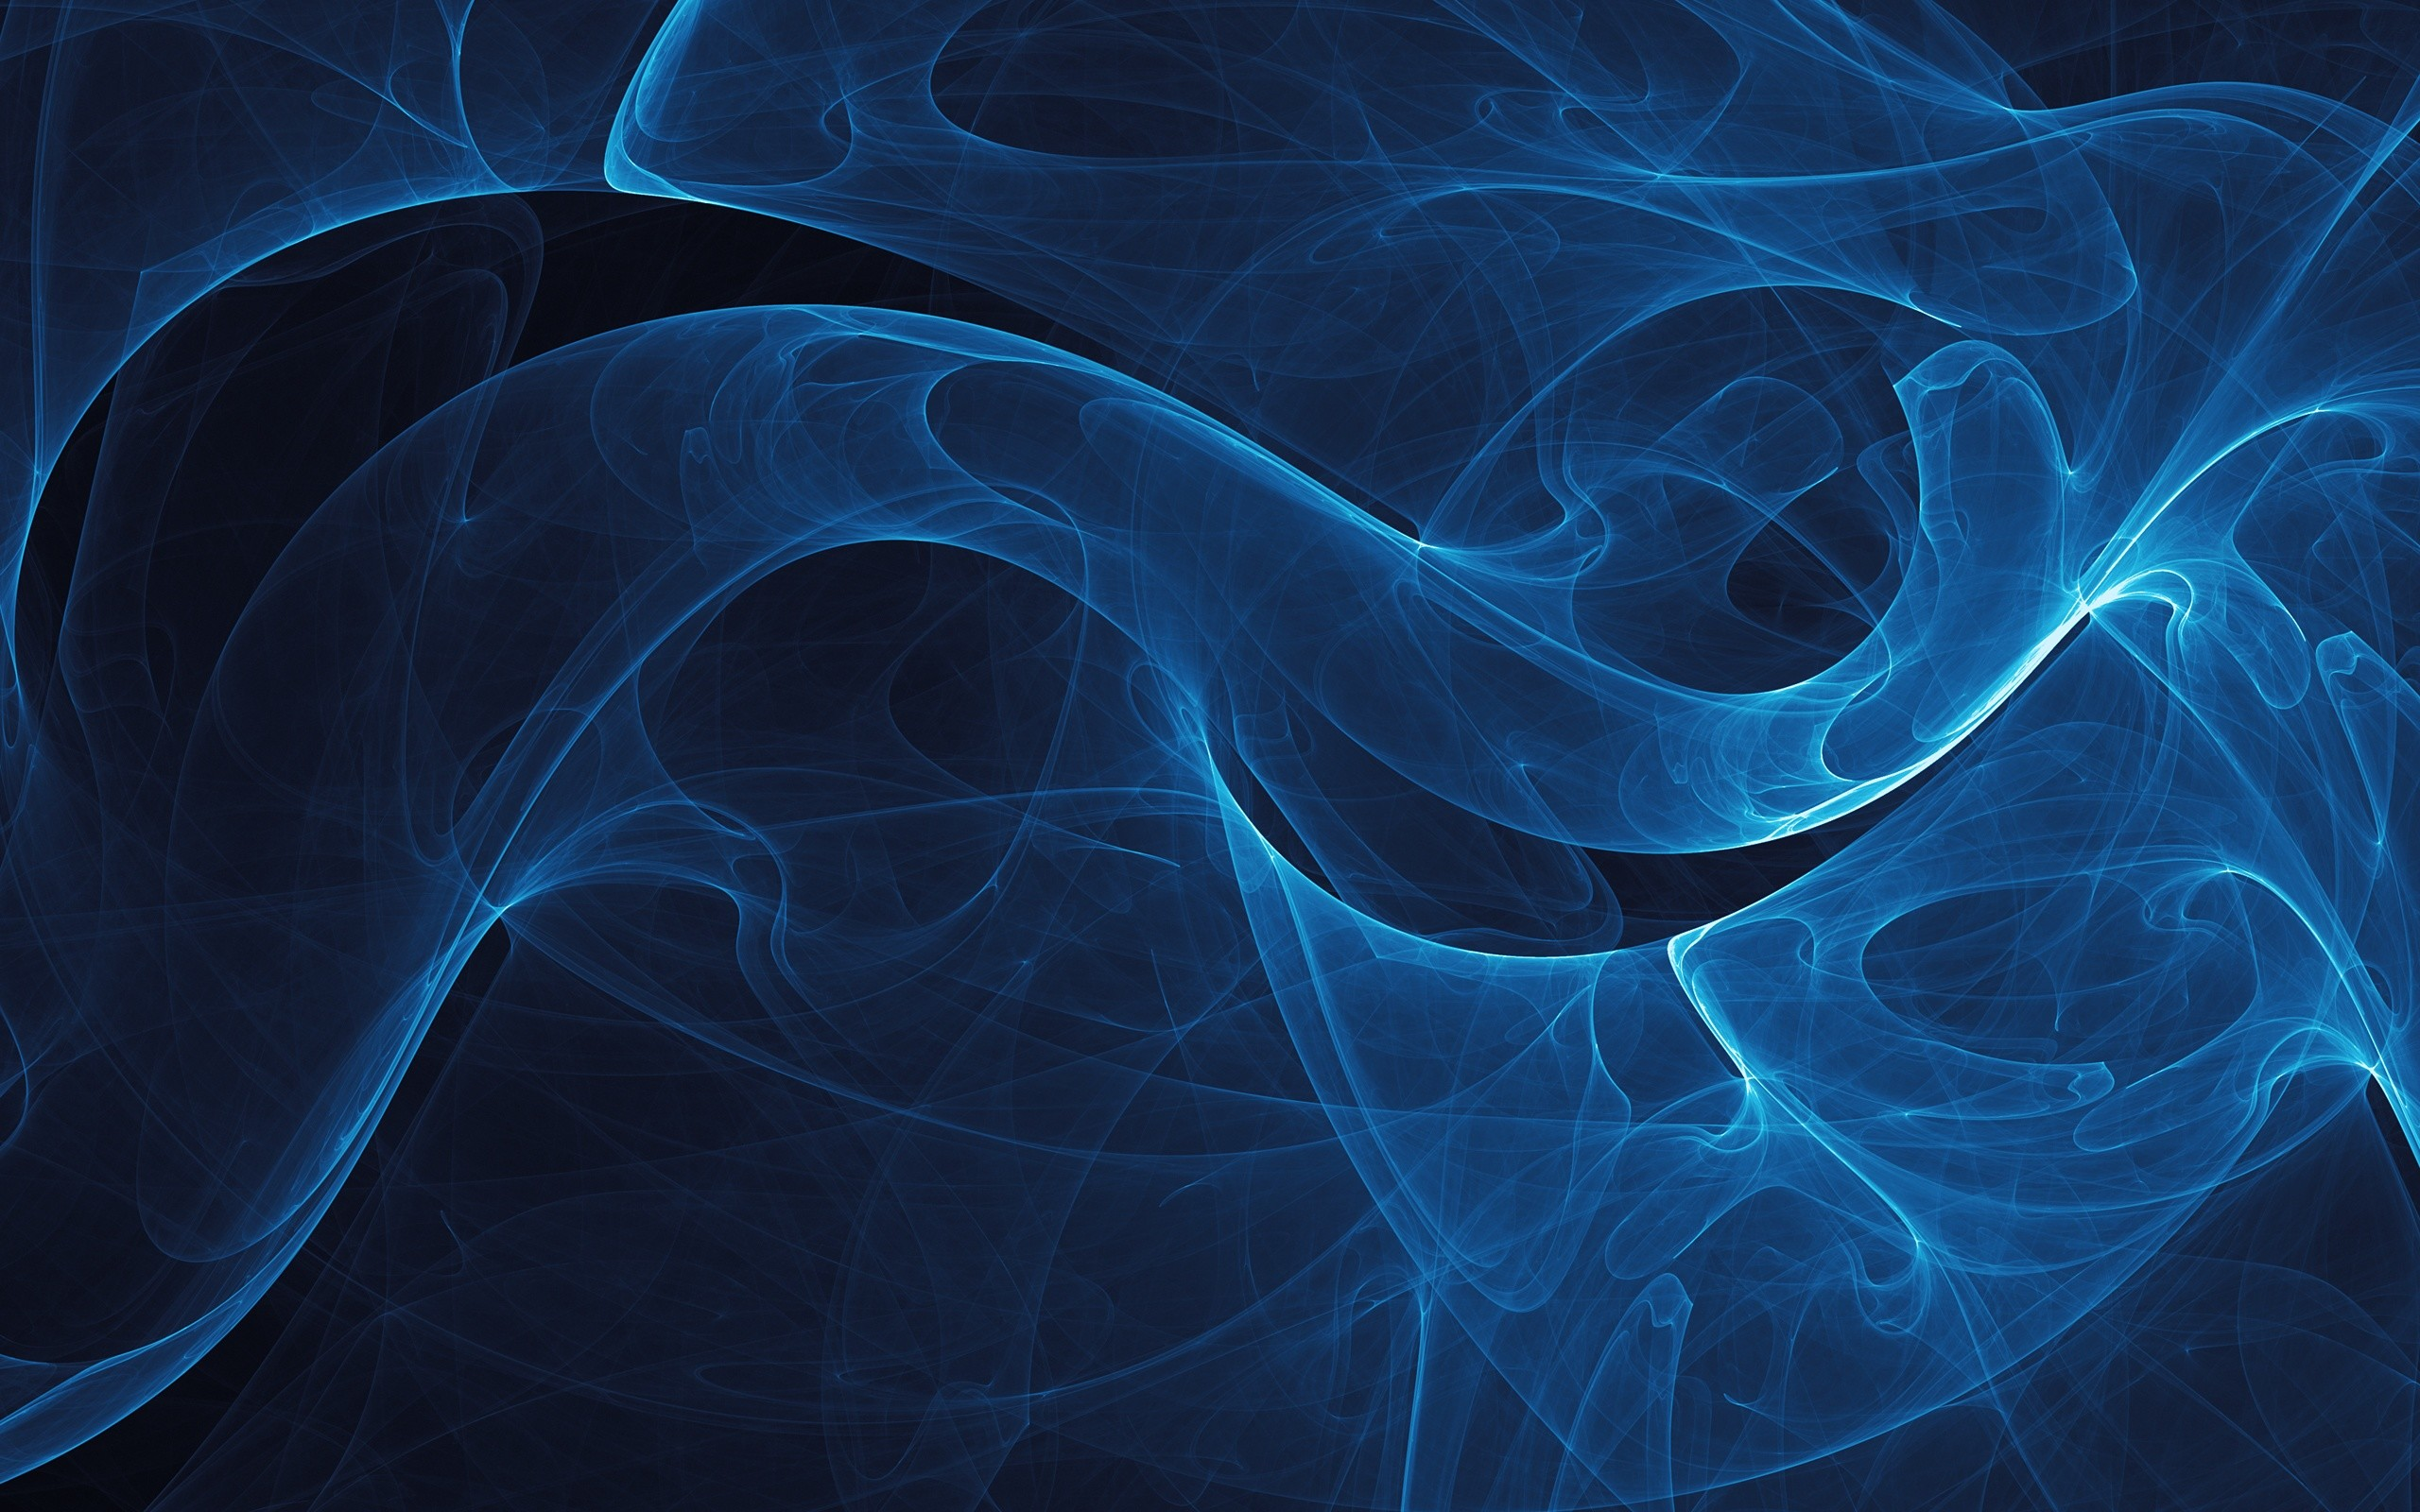 Infinity Symbol Wallpapers (73+ images)